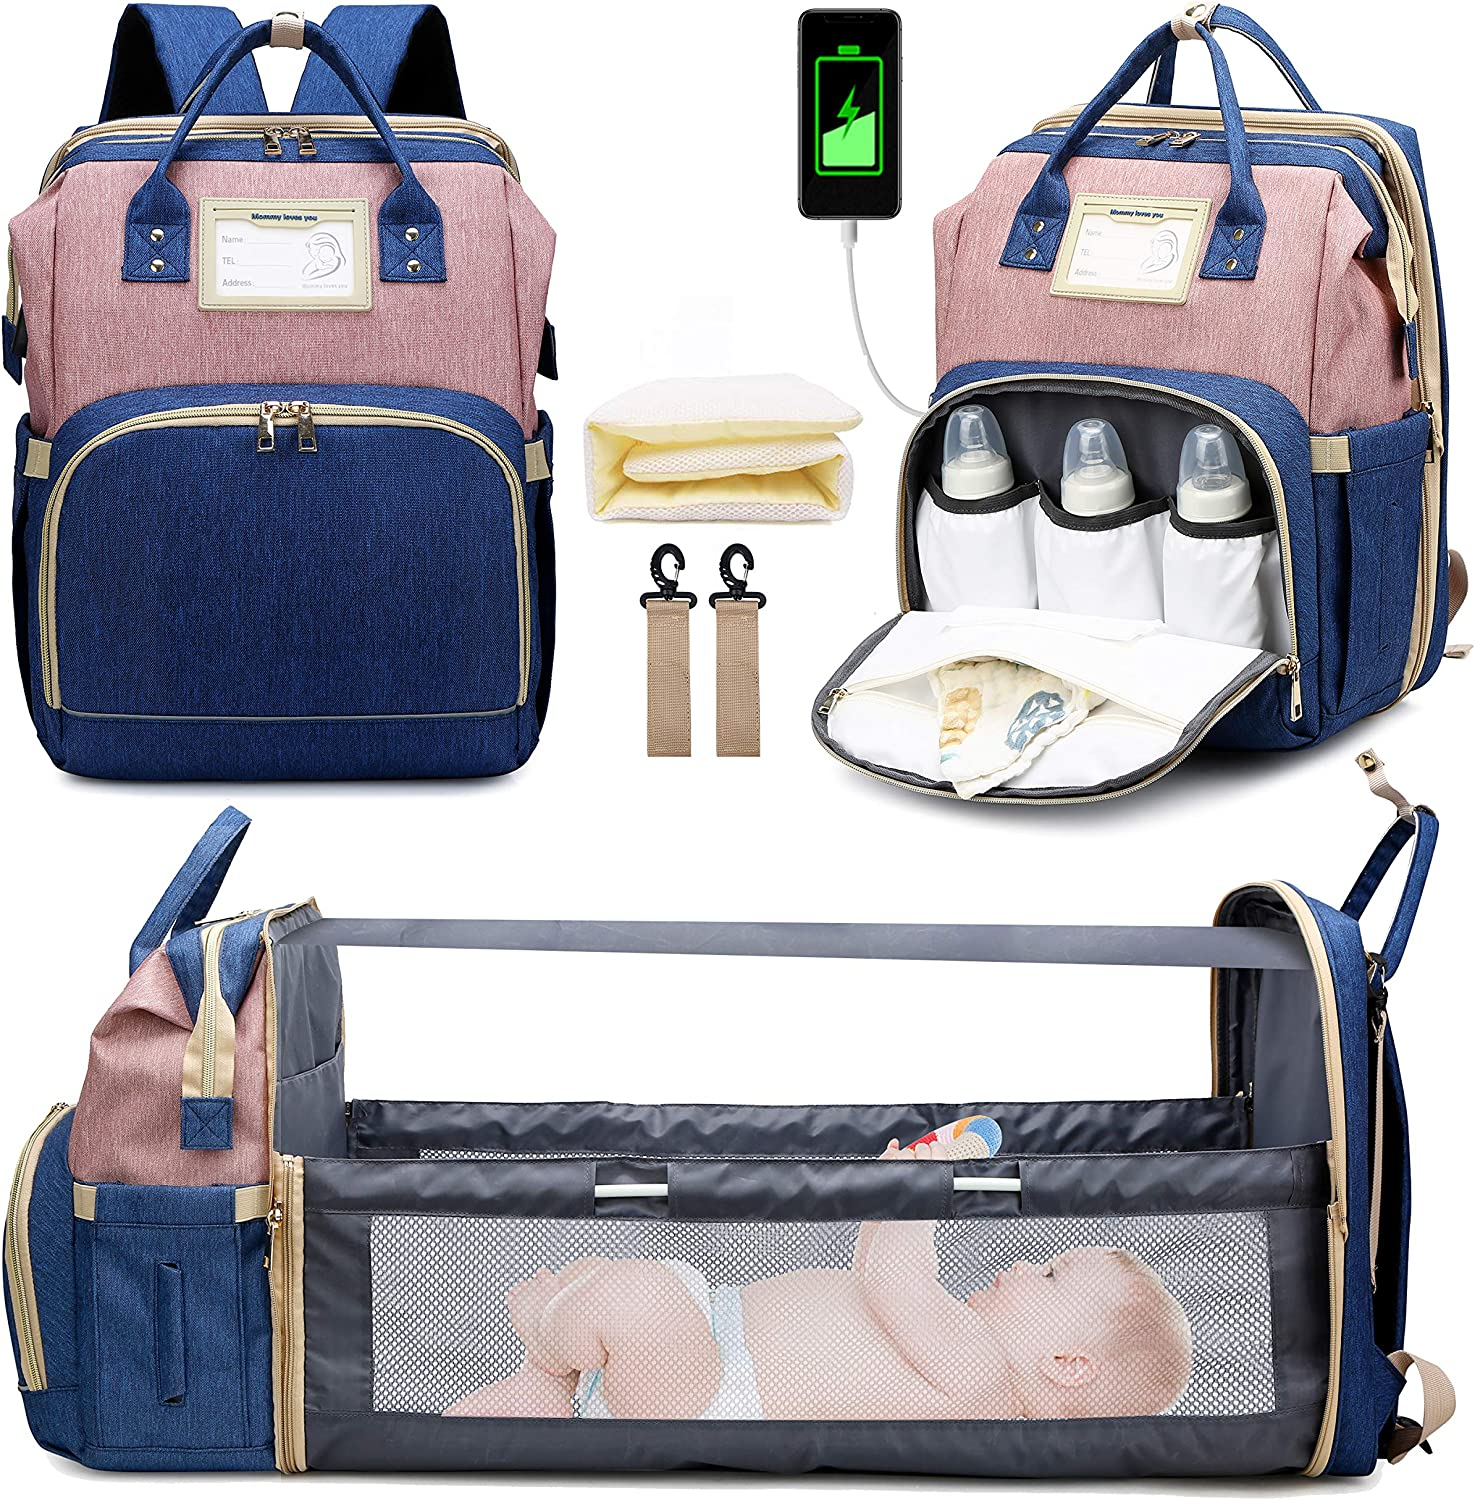 3 in 1 Diaper Bag Backpack with Changing Station, Travel Bassinet Foldable Baby Bed, Baby Bag Portable Crib, Mummy Bag